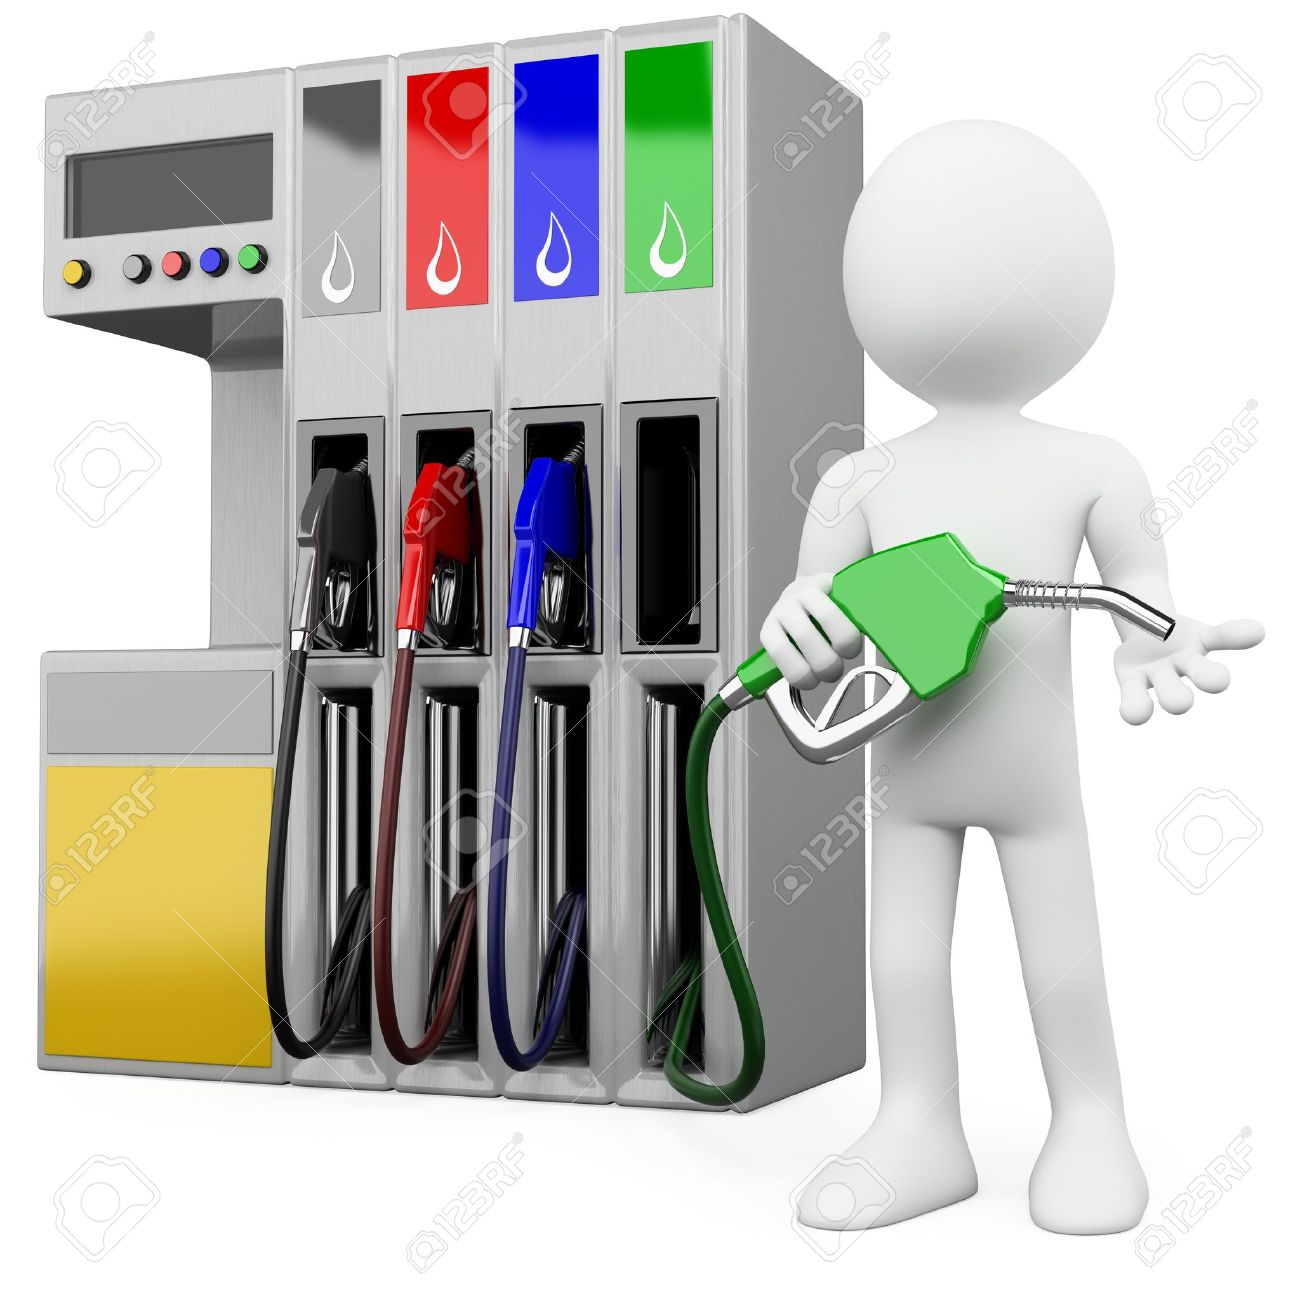 3D worker at a gas station with a petrol pump. Rendered at high resolution on a white background with diffuse shadows. Stock Photo - 12796892